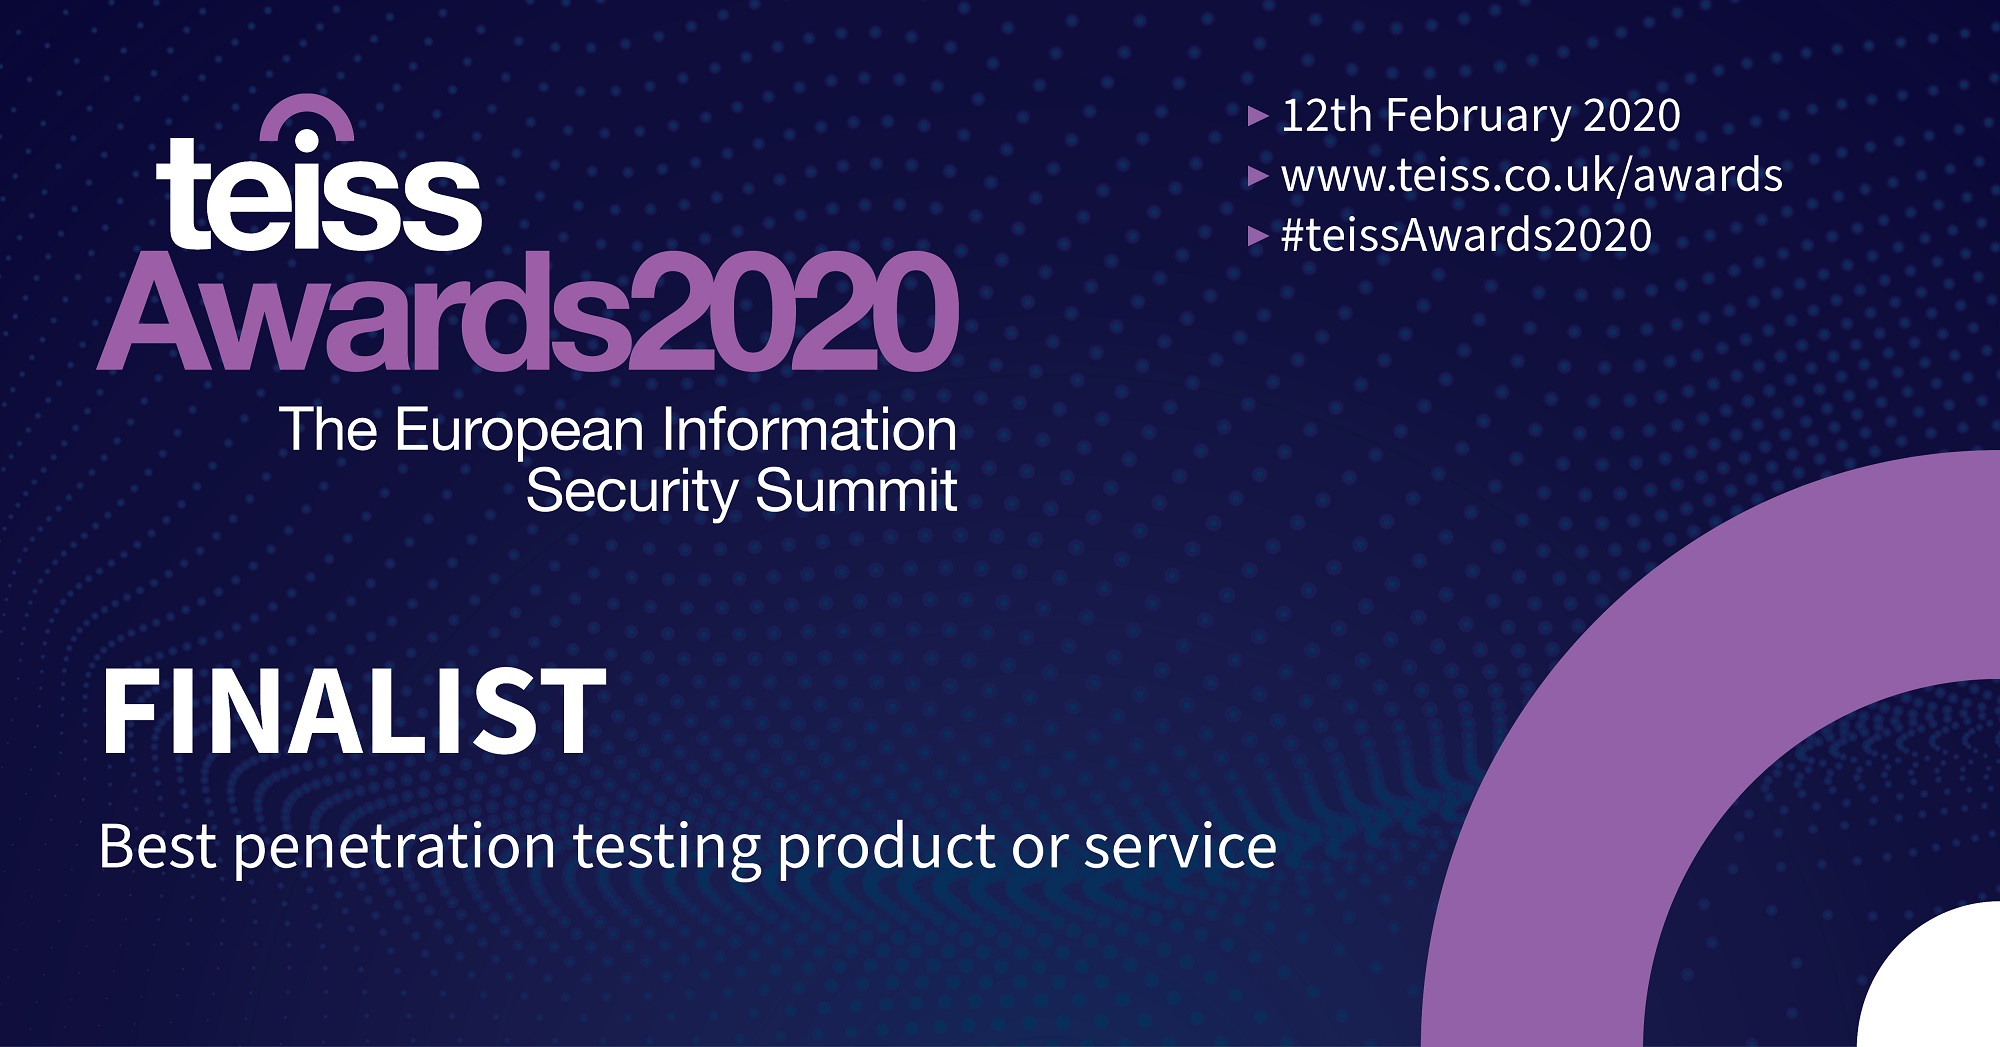 announced as a finalist at the teiss Awards 2020